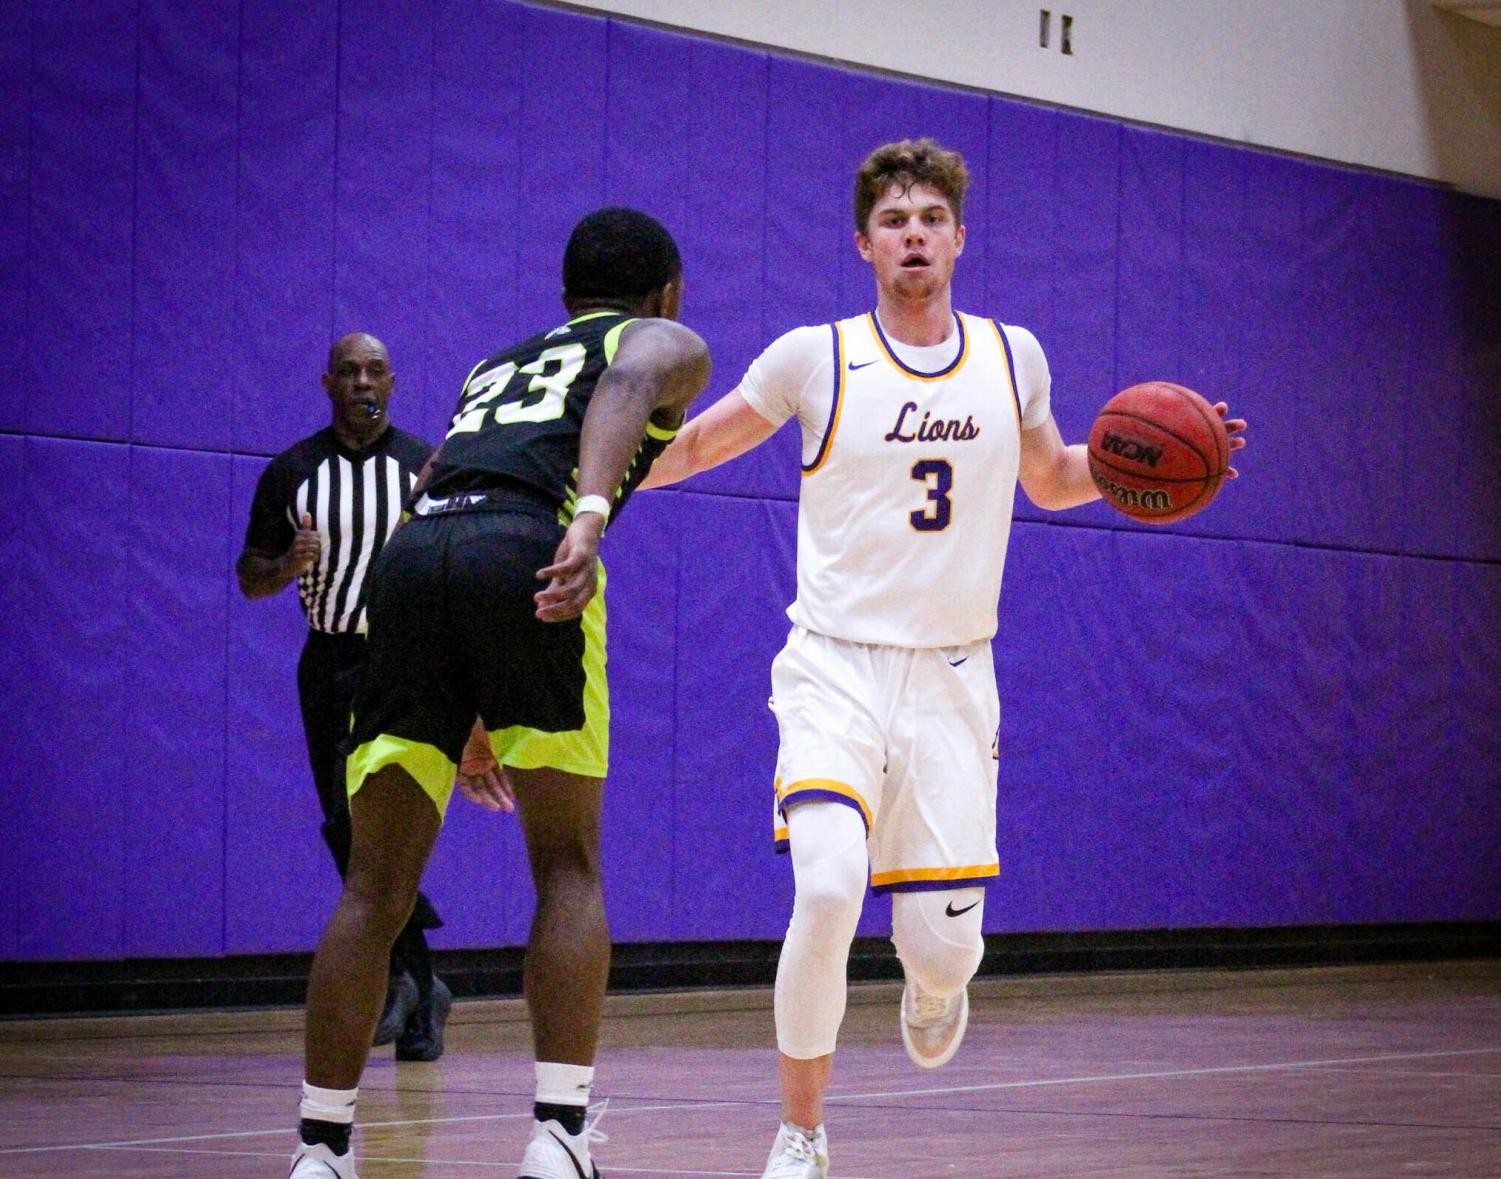 Freshman James Beckwith scored 18 points with 4 three pointers in 19 minutes off the bench for the Lions.